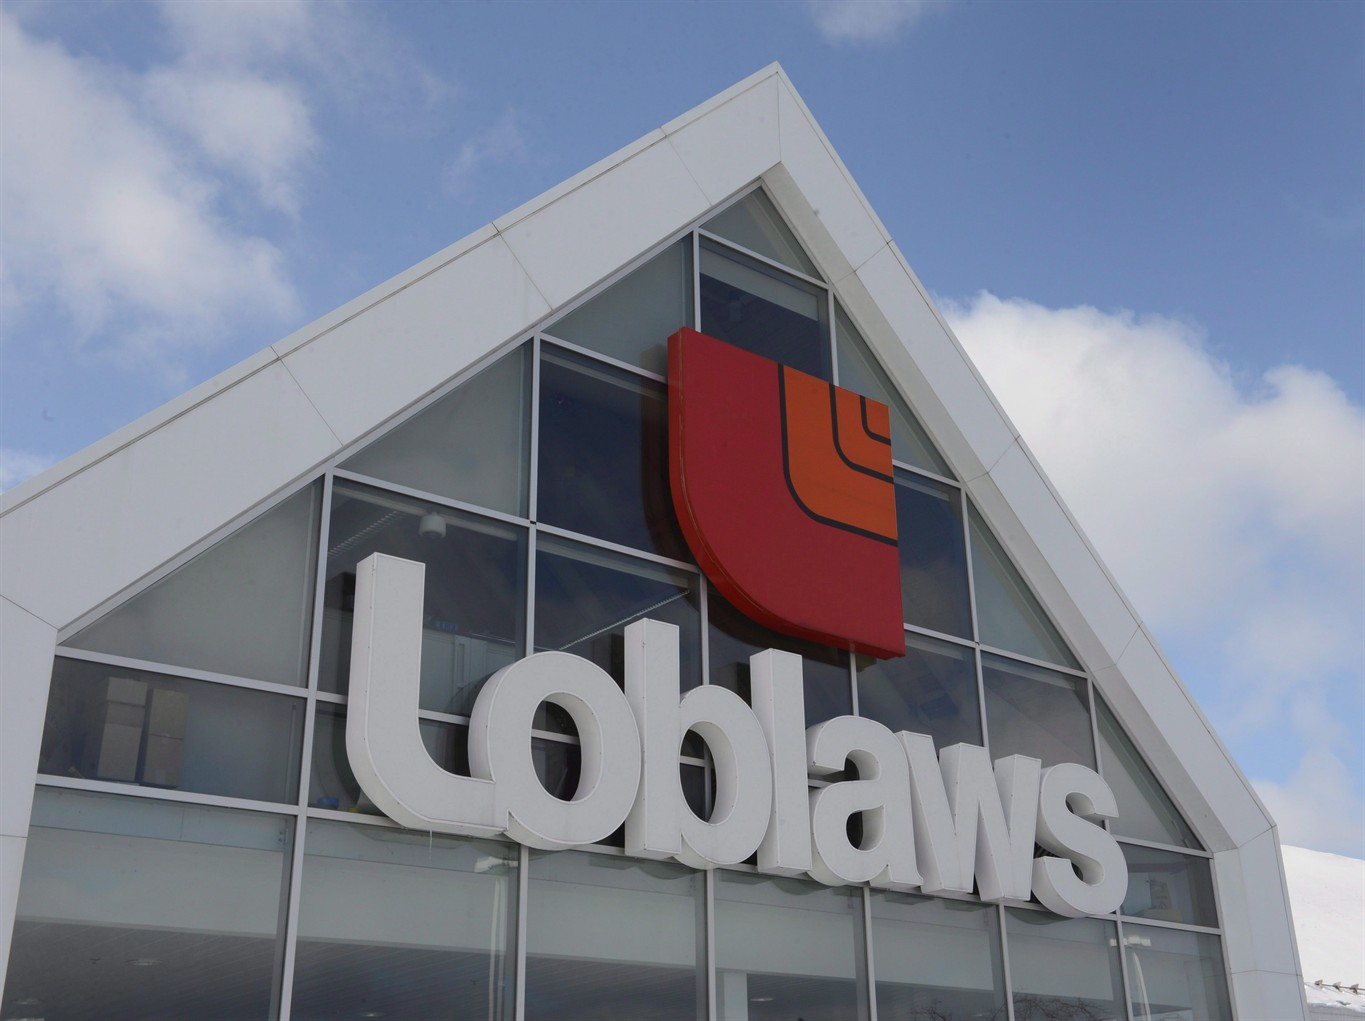 Loblaw launches bread price-fixing gift card offer with some restrictions